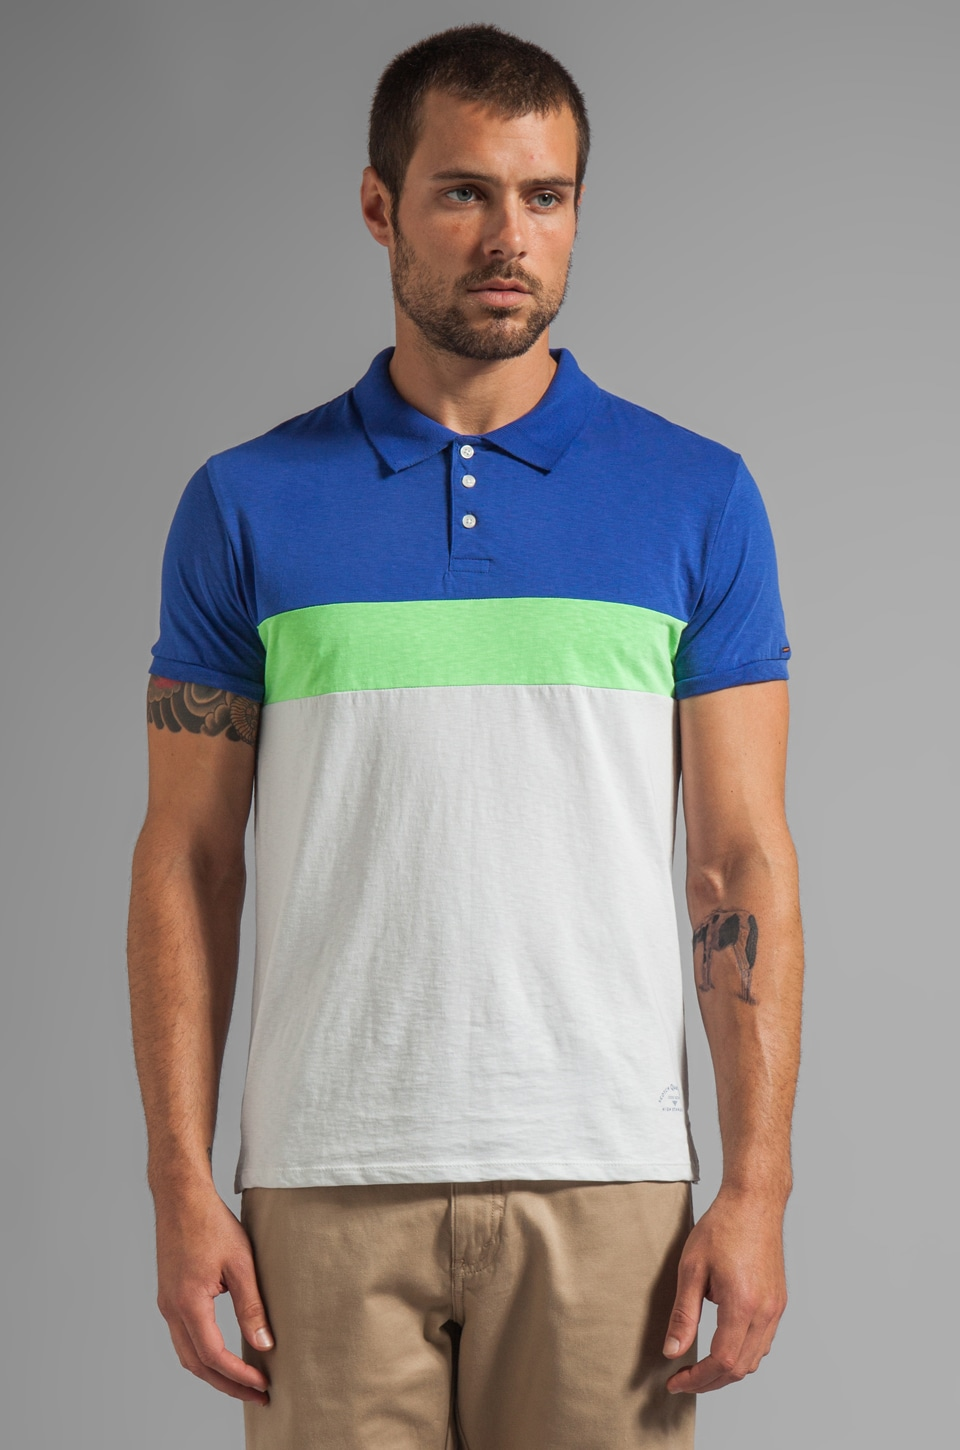 Scotch & Soda Colorblock Jersey Polo in Blue/Green/White